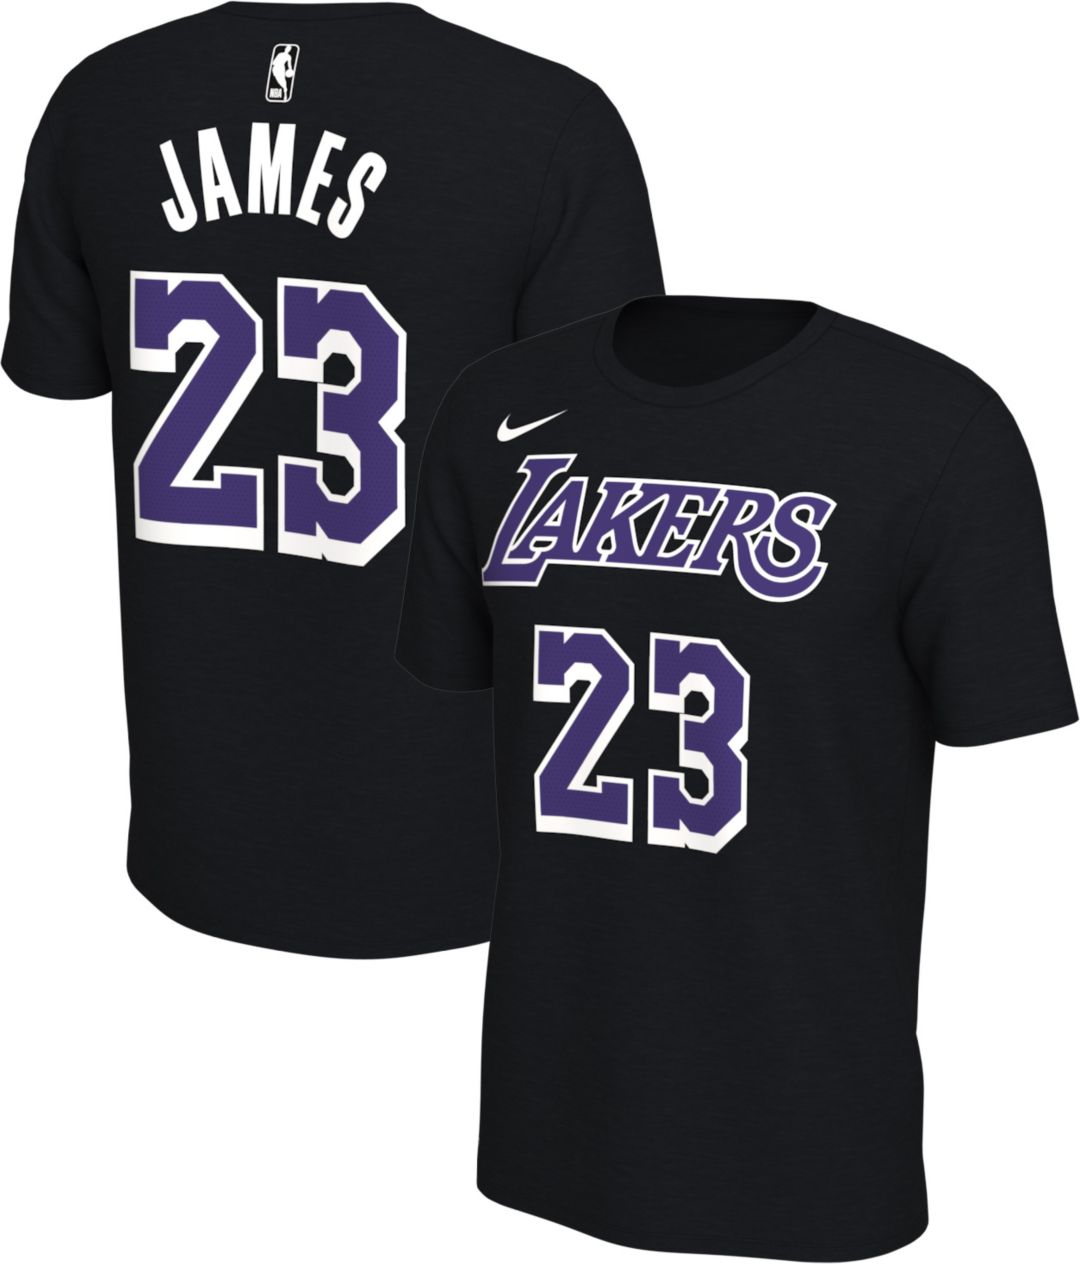 promo code 5c872 6461d Nike Men's Los Angeles Lakers LeBron James #23 Dri-FIT Black T-Shirt